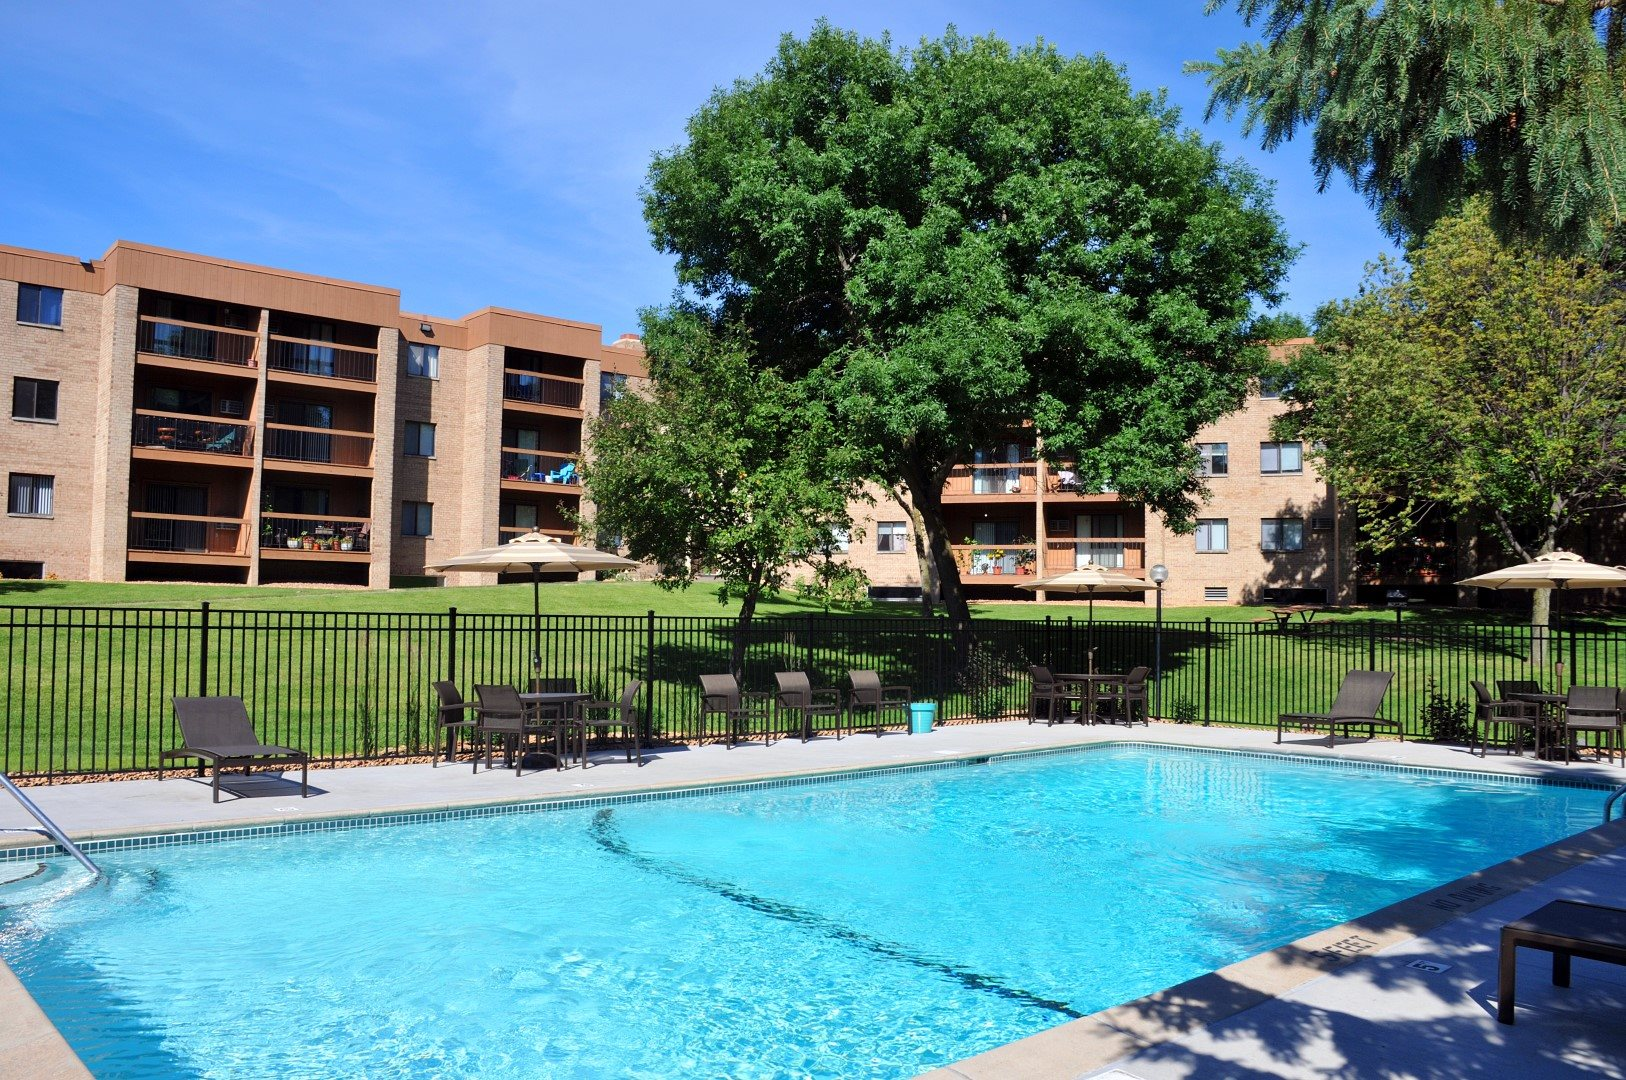 Edenvale Apartments Eden Prairie Minnesota Outdoor Pool Sun Deck